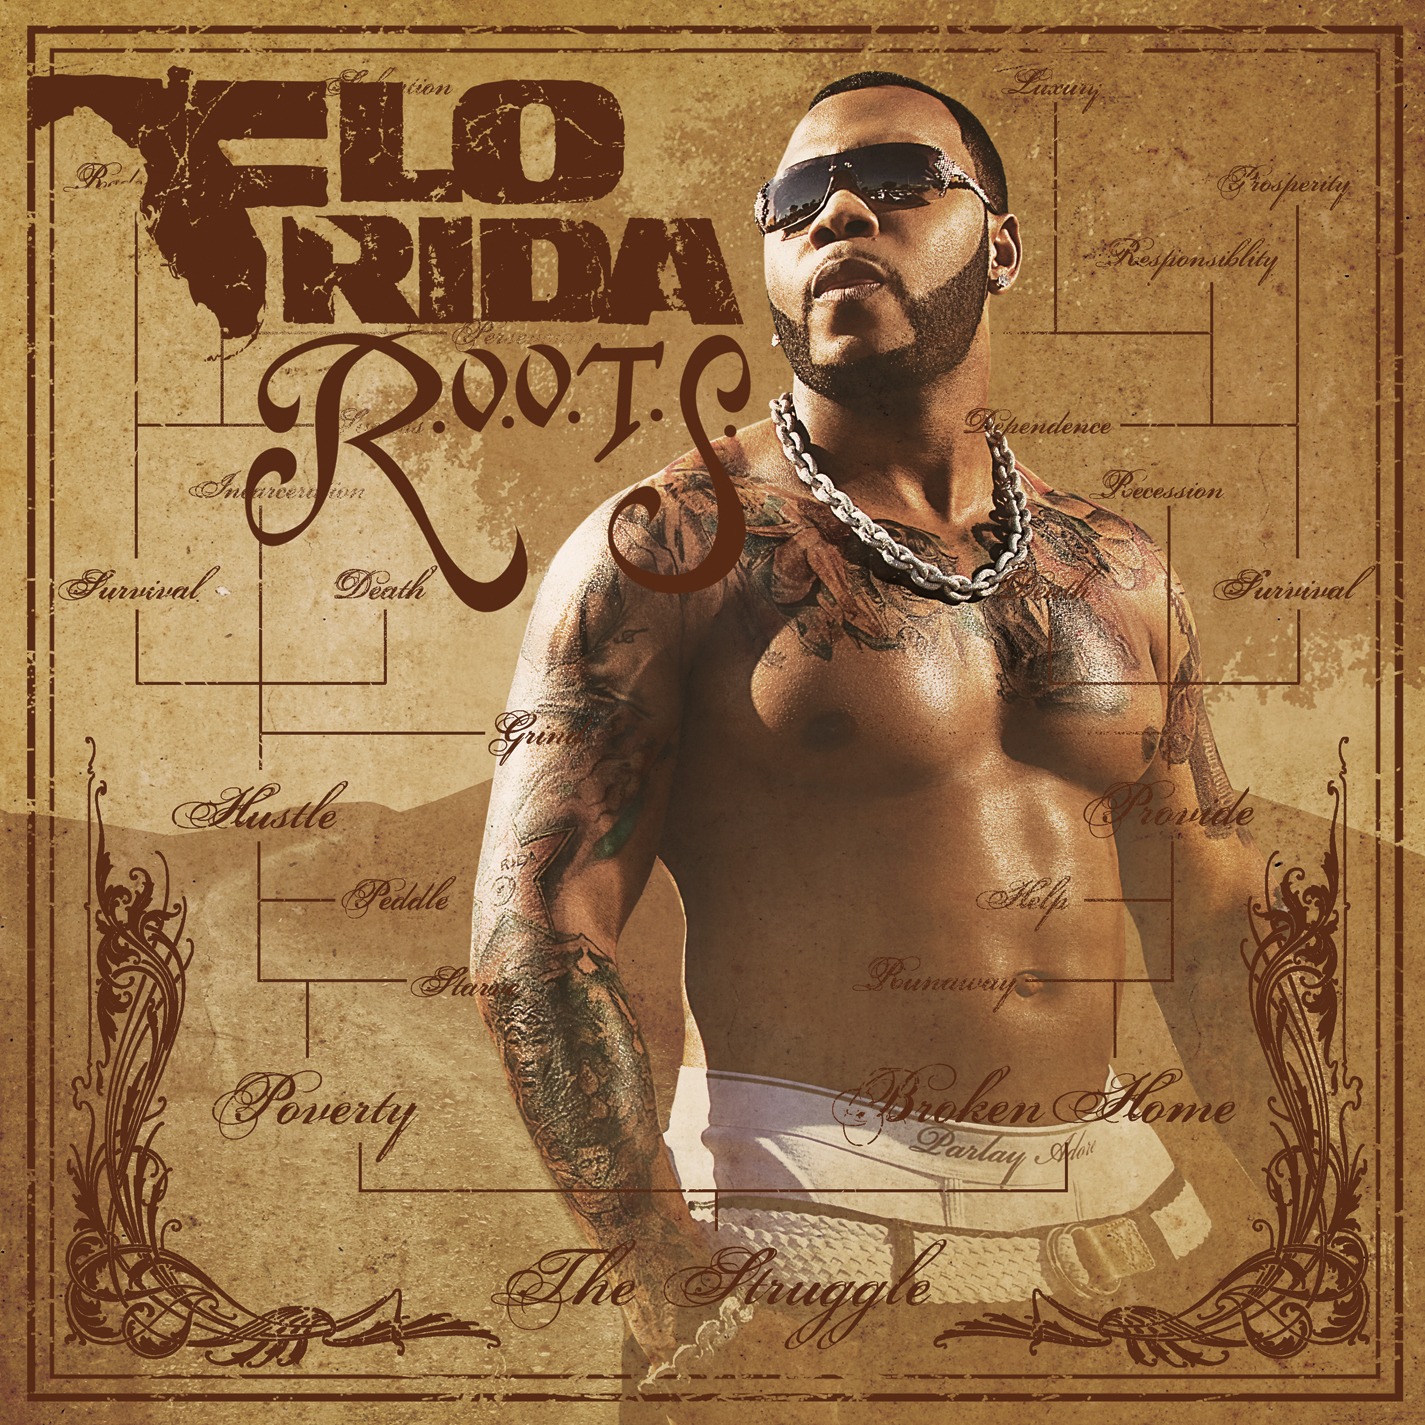 R. O. O. T. S. Flo rida flo rida mp3 download aureacode. Com.